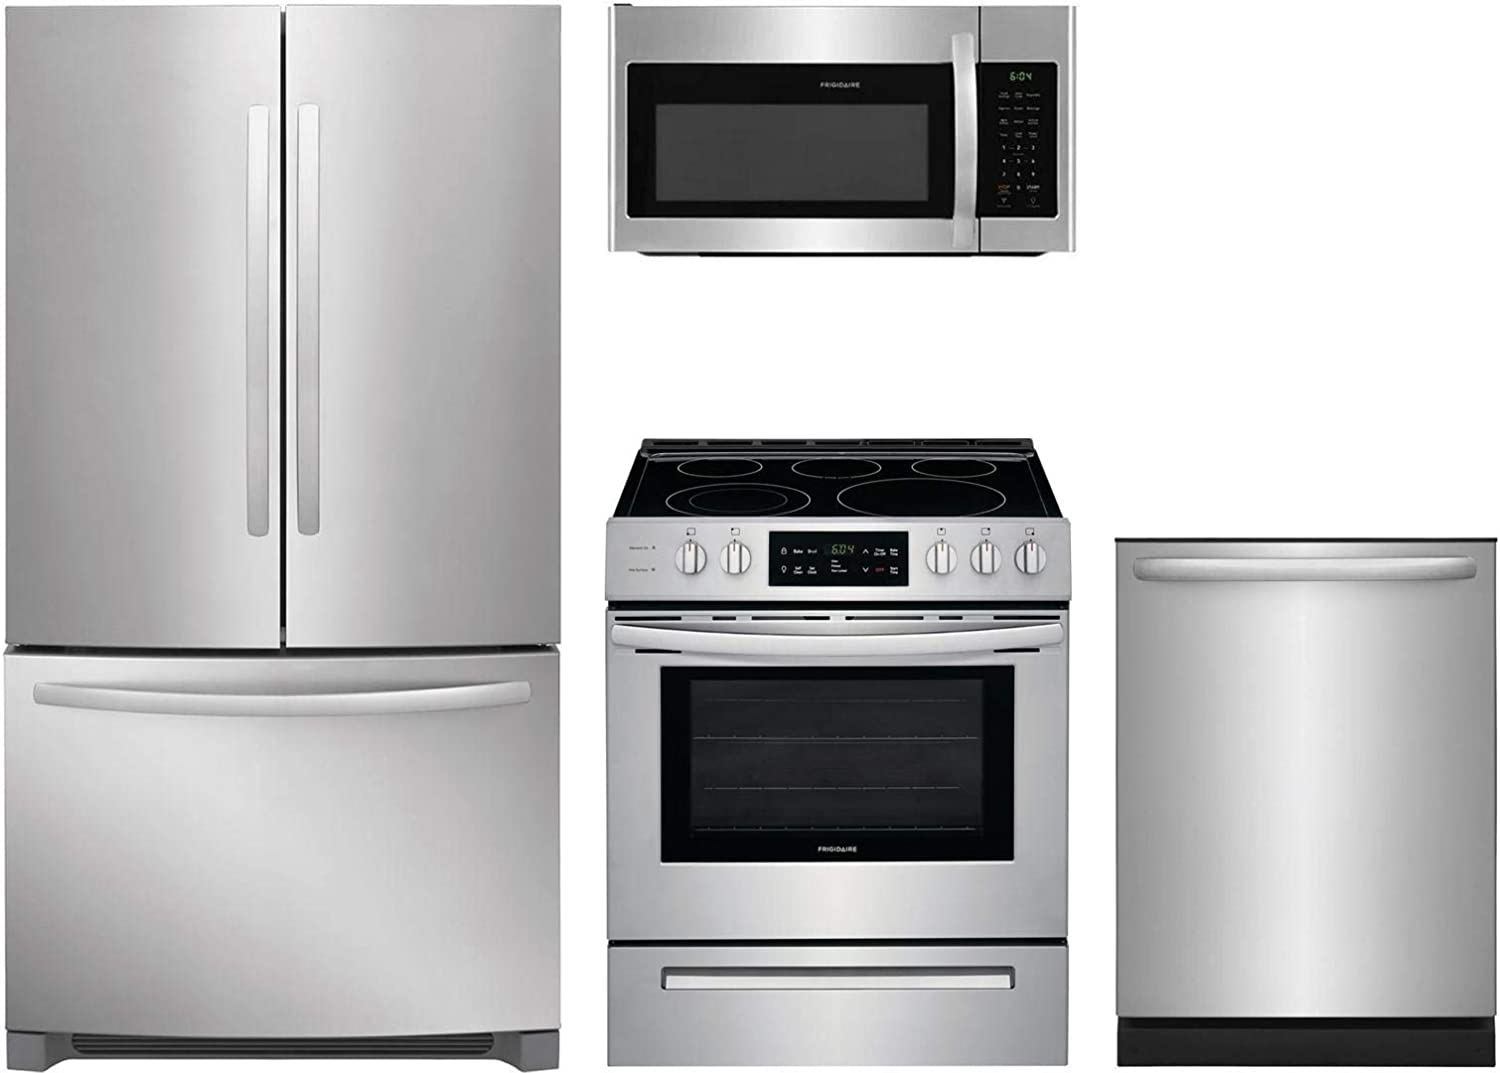 """Frigidaire 4-Piece Kitchen Appliance Package with FFHN2750TS 36"""" French Door Refrigerator FFEH3054US 30"""" Freestanding Electric Range FFMV1745TS 30"""" Over-the-Range Microwave and FFID2426TS 24"""" Fully Integrated Dishwasher in Stainless Steel"""